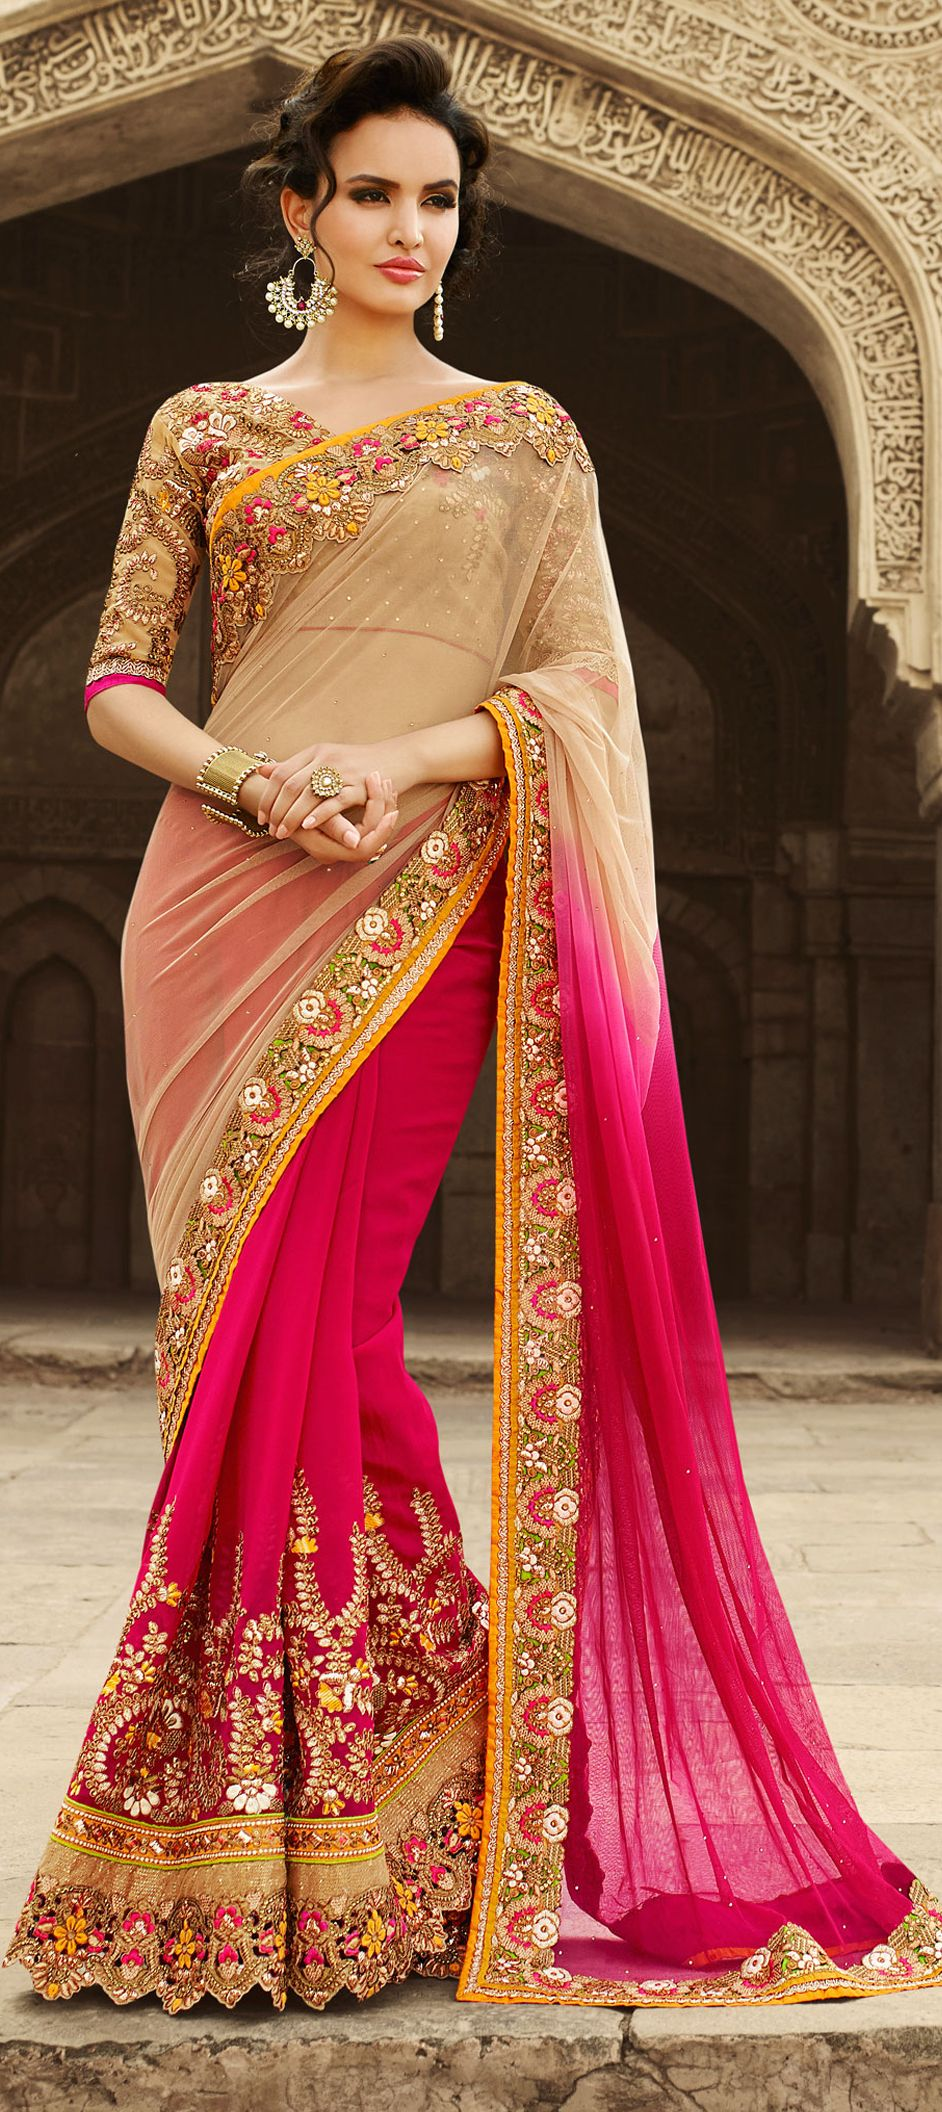 a04a759f54aaa7 180744: Beige and Brown, Pink and Majenta color family Bridal Wedding Sarees  with matching unstitched blouse.